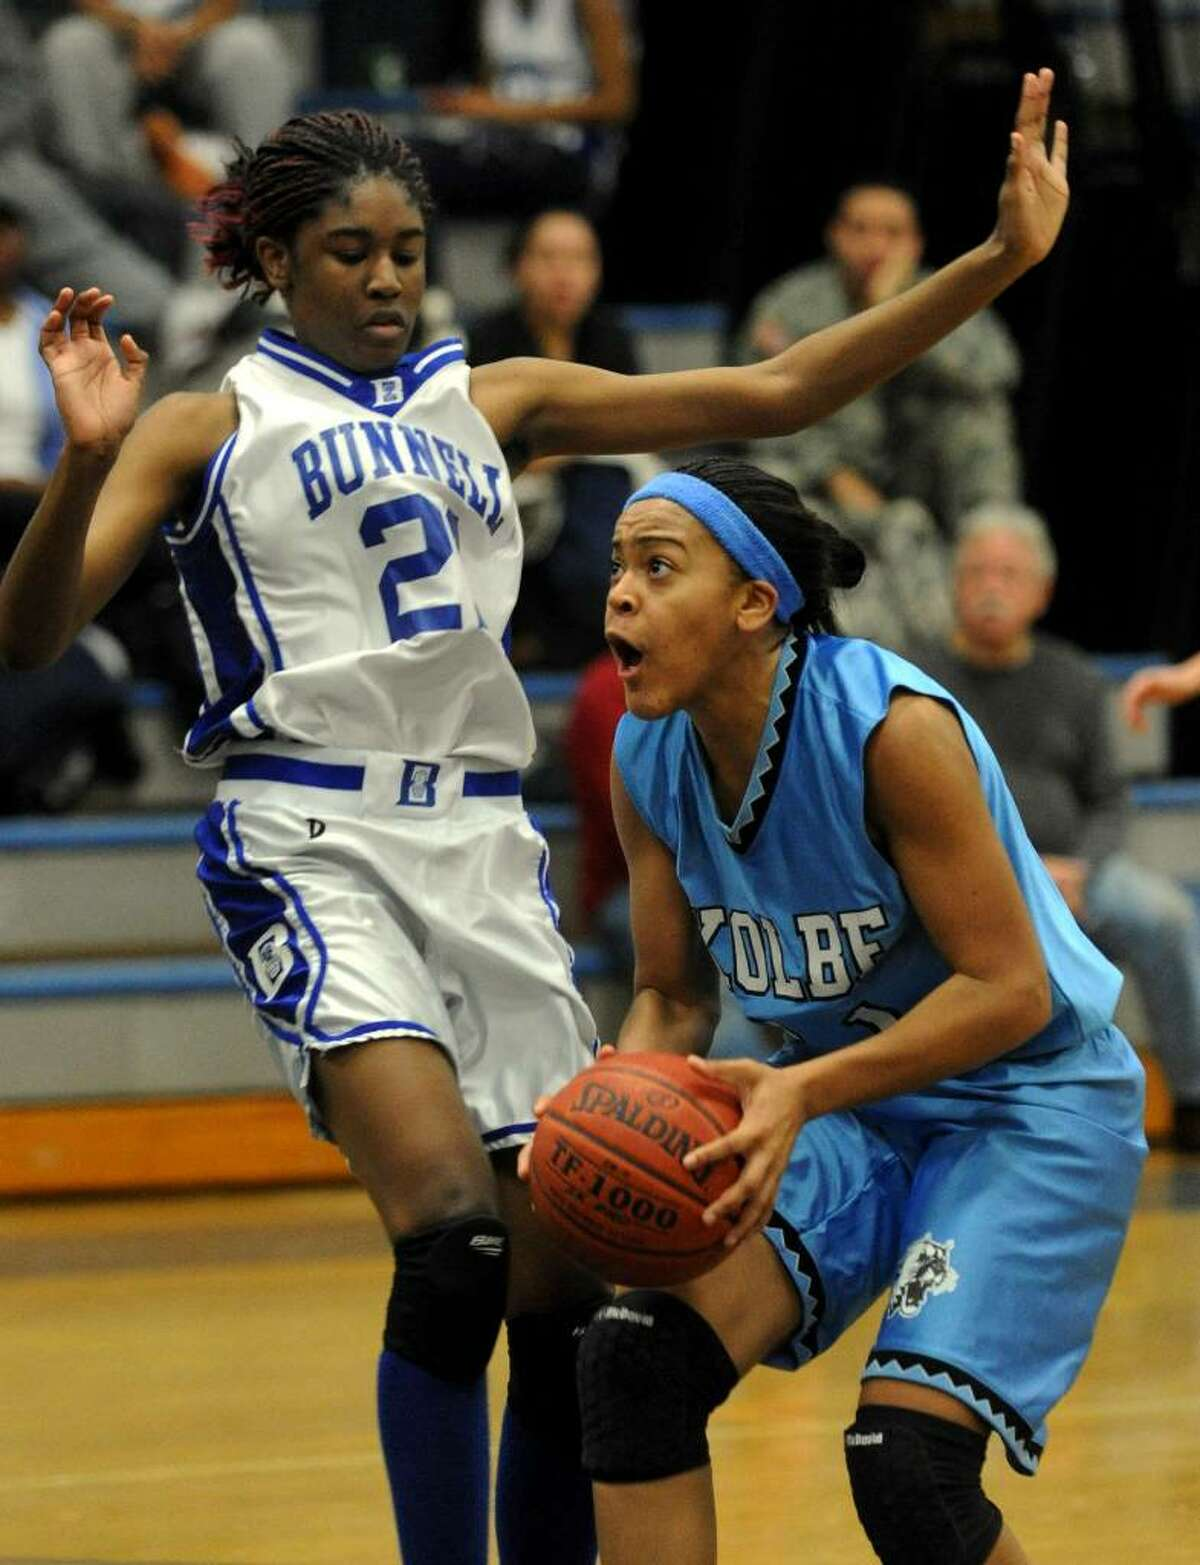 Kolbe's #31 Cherelle Moore looks to make a shot as Bunnell's #21 Shaqura Palmer defends, during girls basketball action in Stratford, Conn. on Tuesday Jan. 12, 2010.